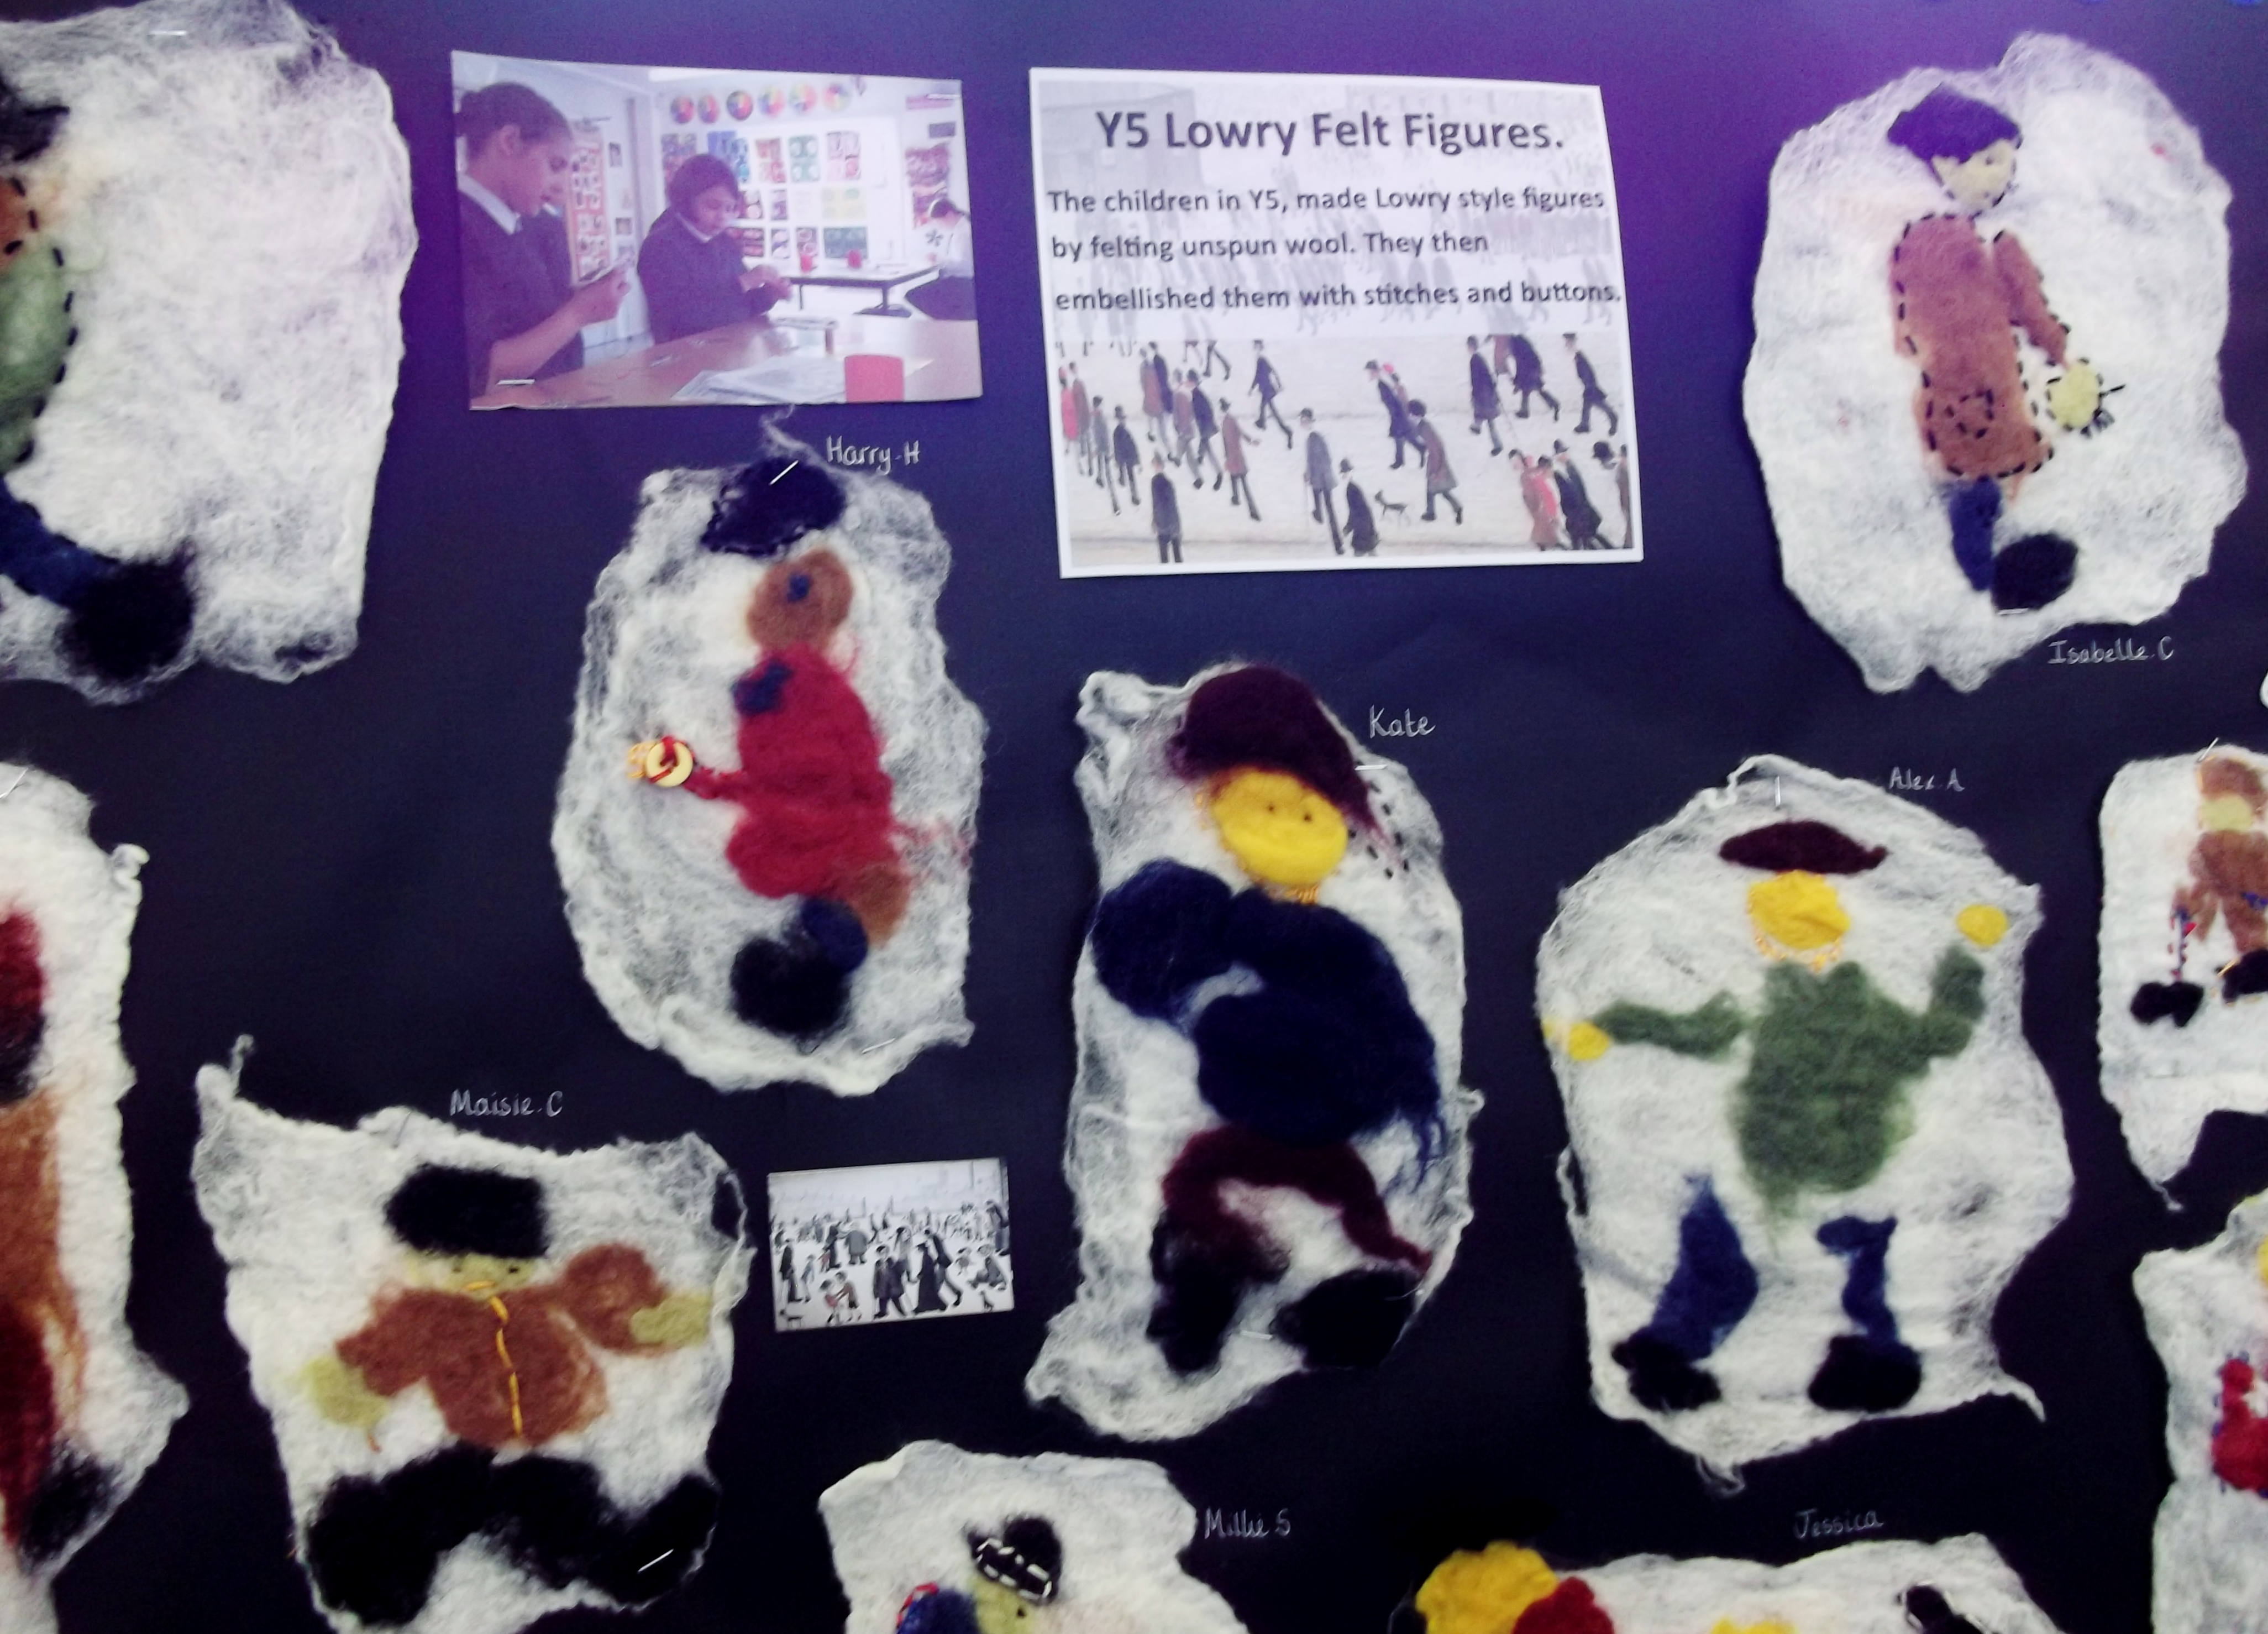 Felted and embellished Lowry style figure by Y5 children